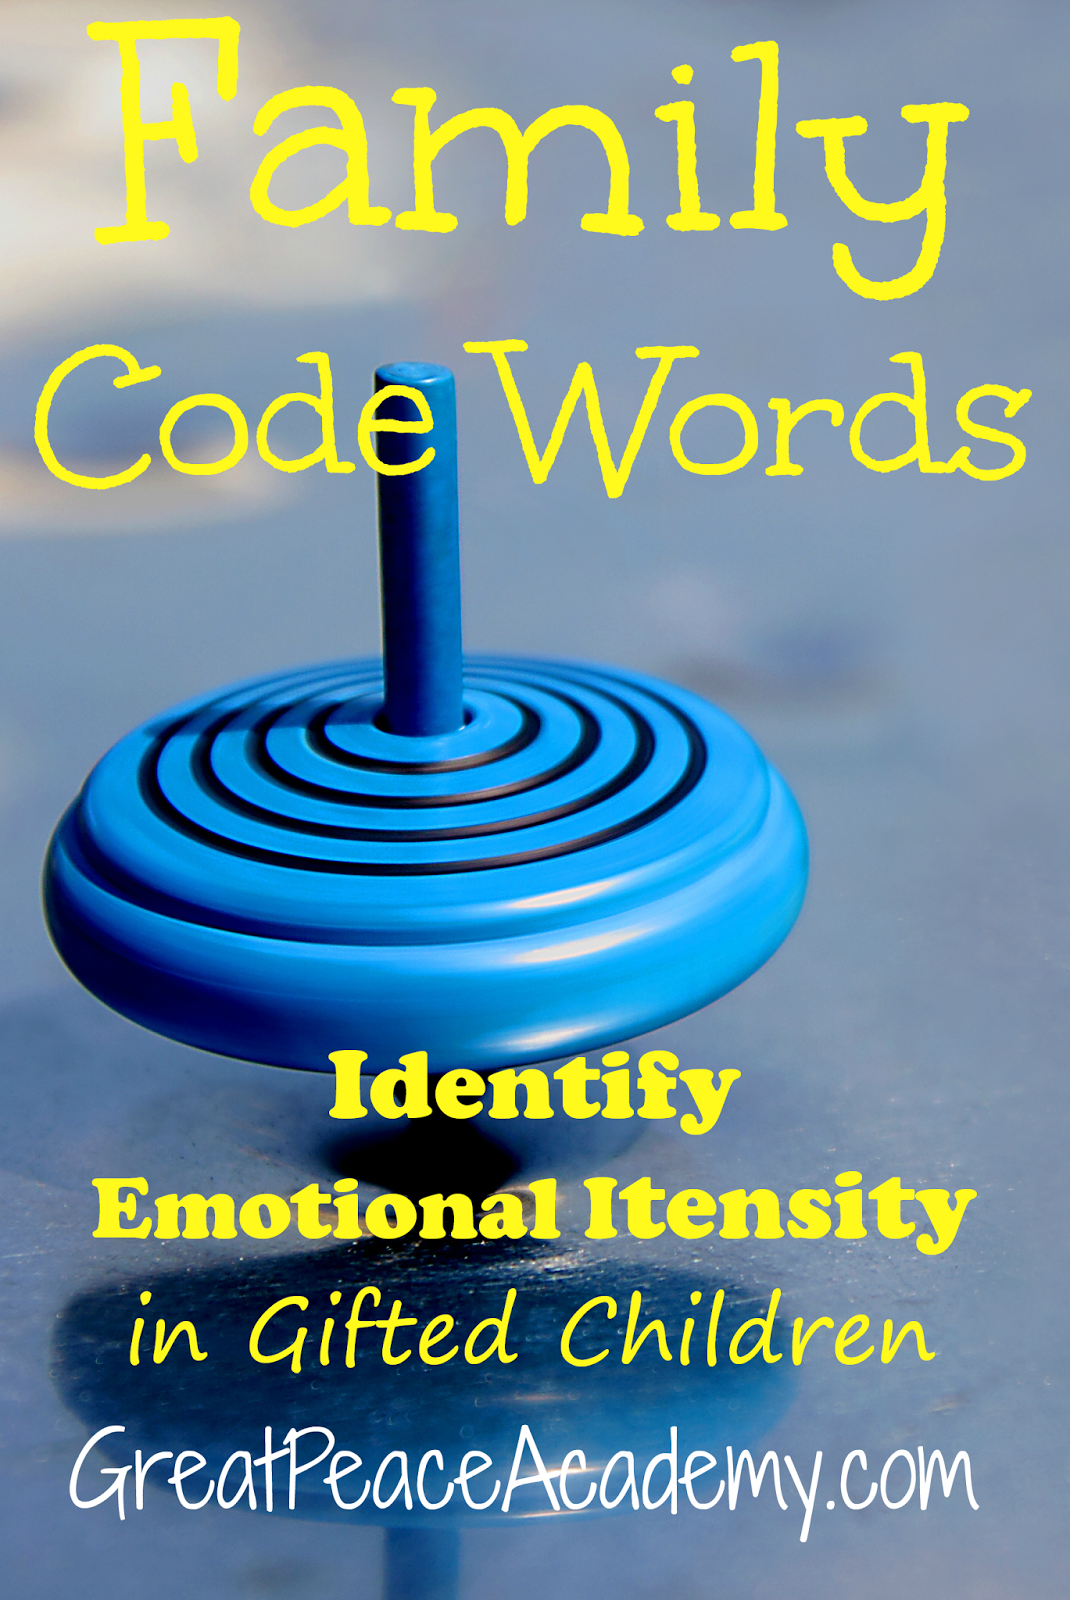 Family code words help gifted children identify emotional intensity